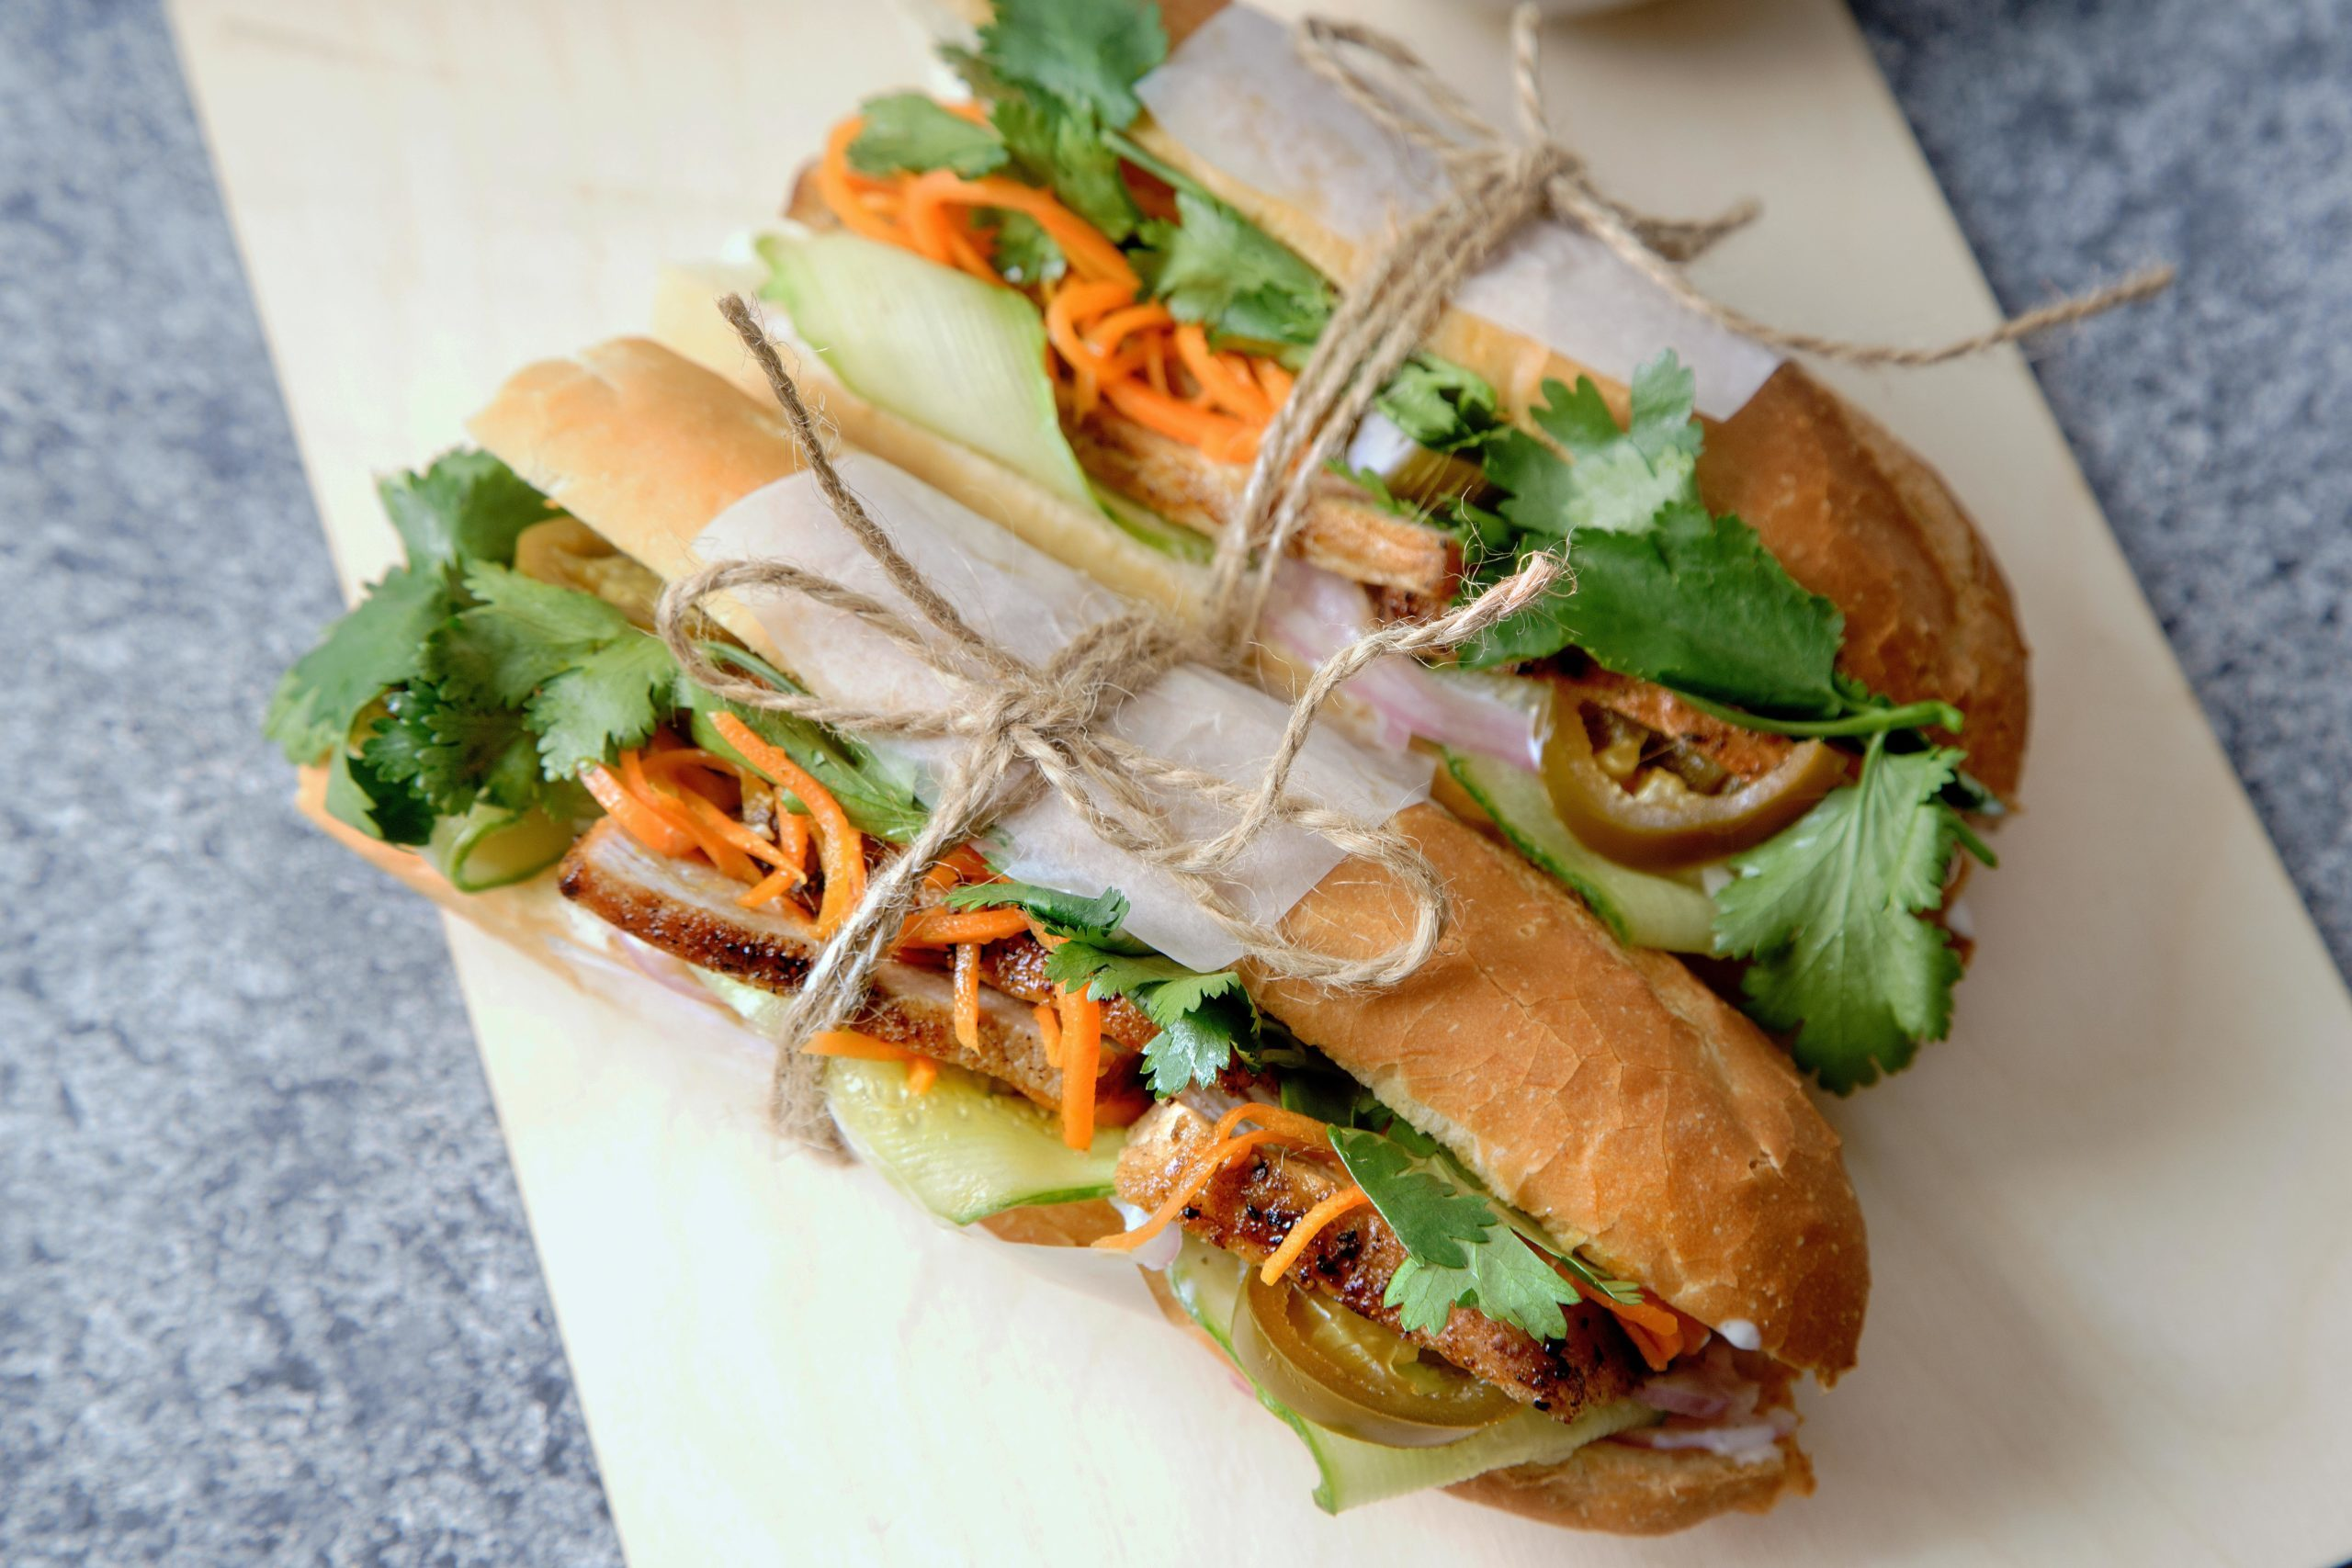 prepared meals nutritionists avoid   sandwich